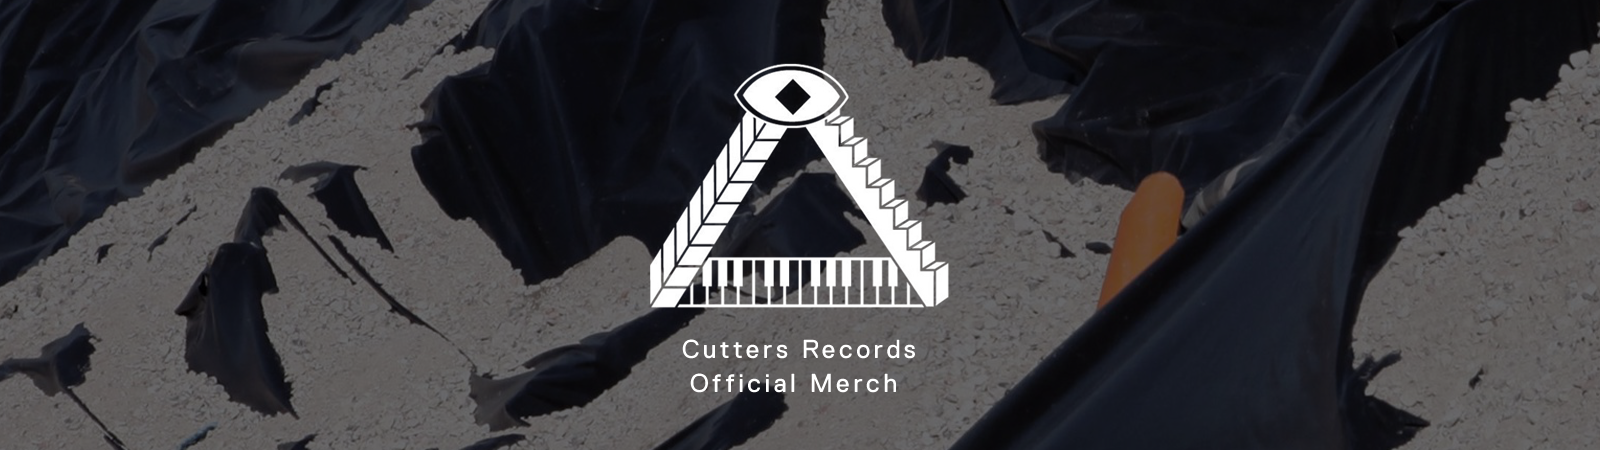 Cutters Records